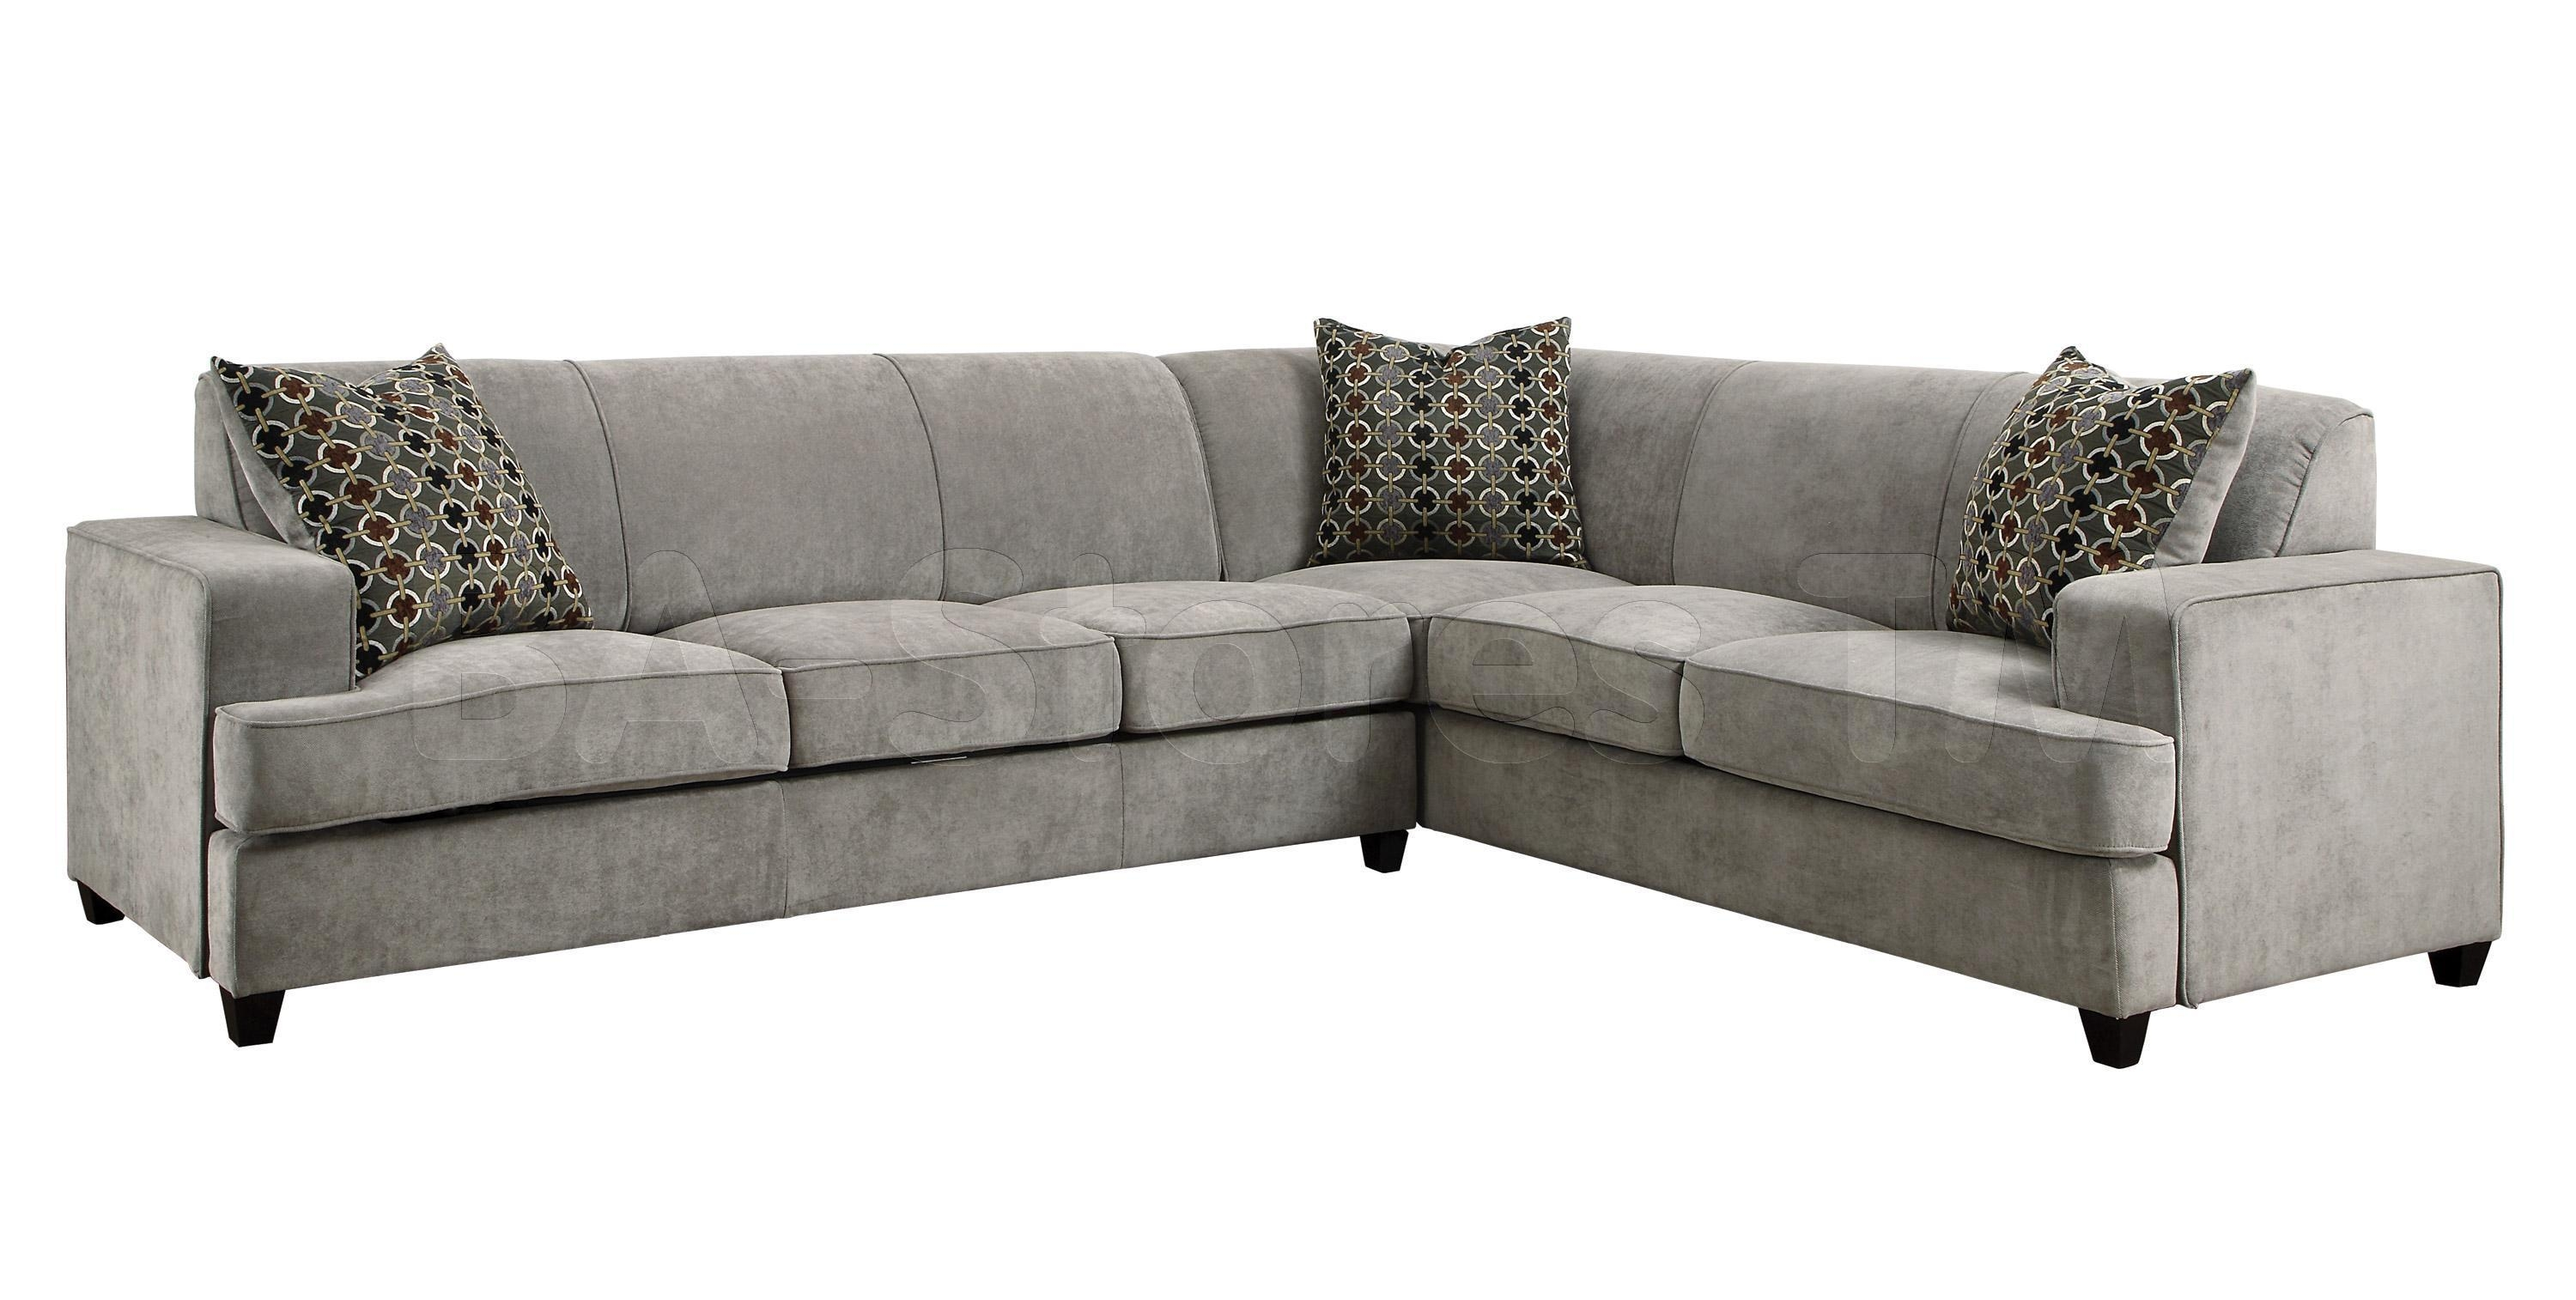 charcoal gray sectional sofa dry clean at home 20 collection of sofas ideas